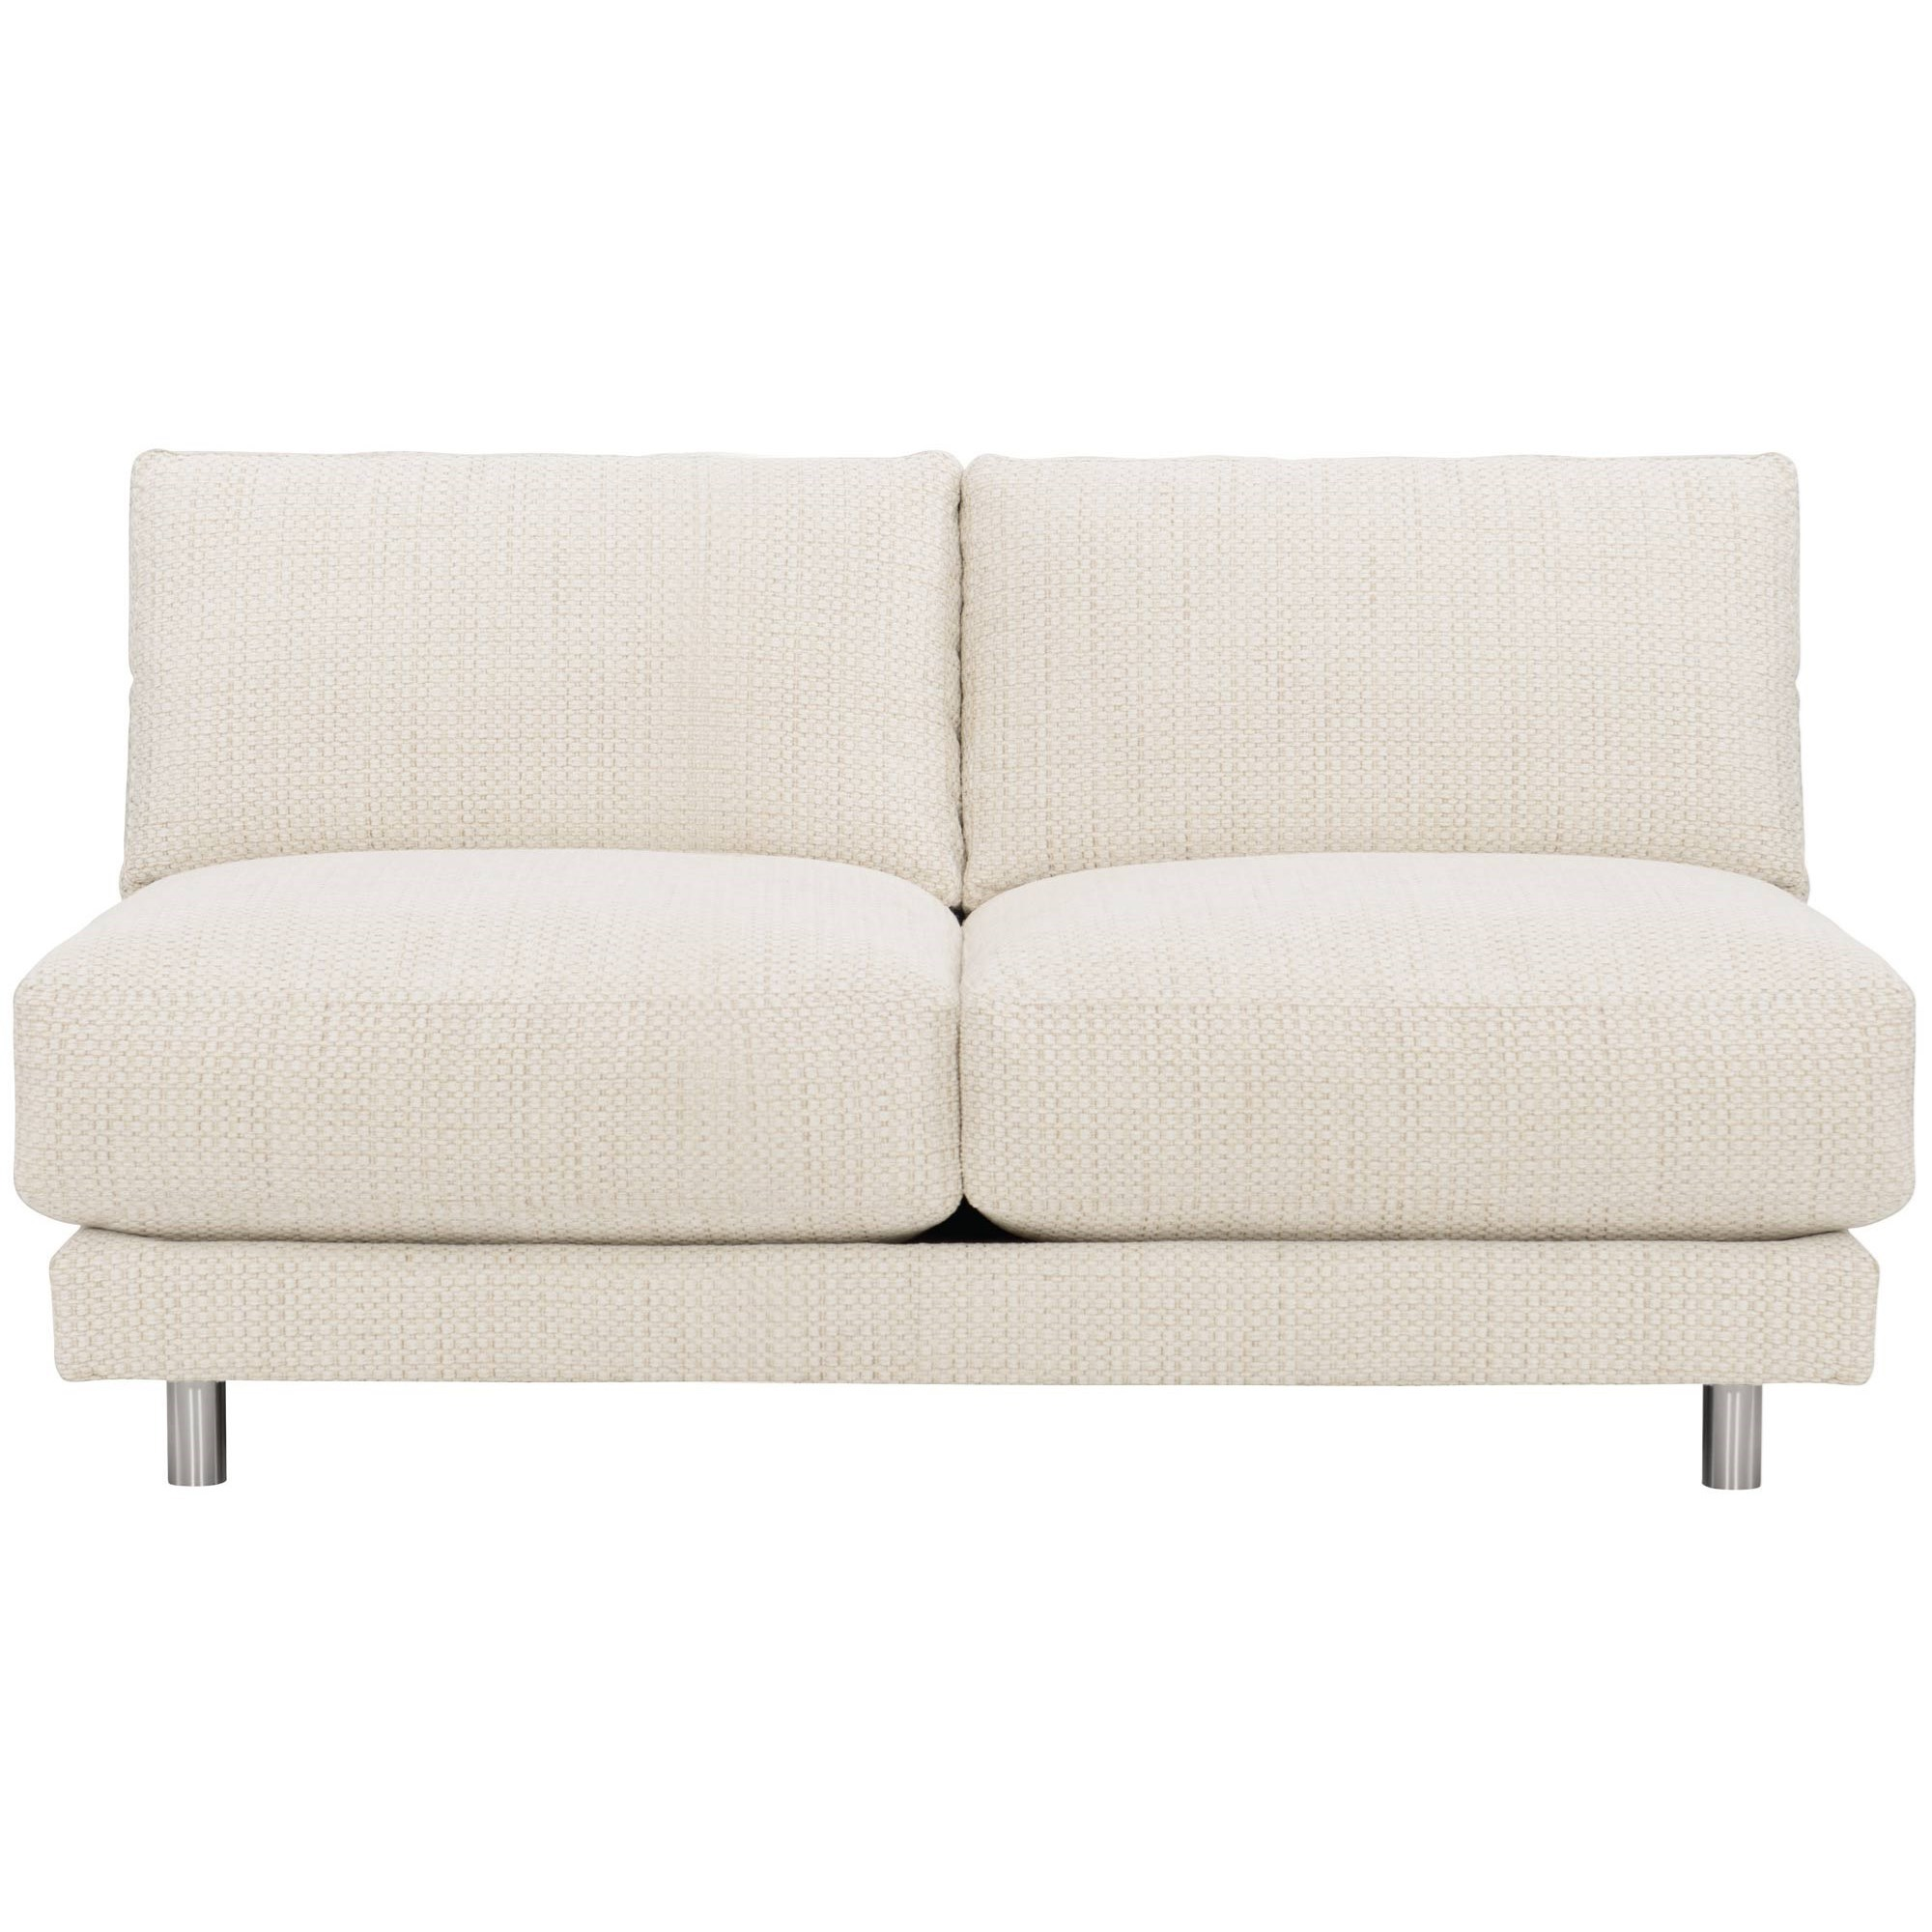 Exteriors - Avanni Armless Loveseat by Bernhardt at Fisher Home Furnishings